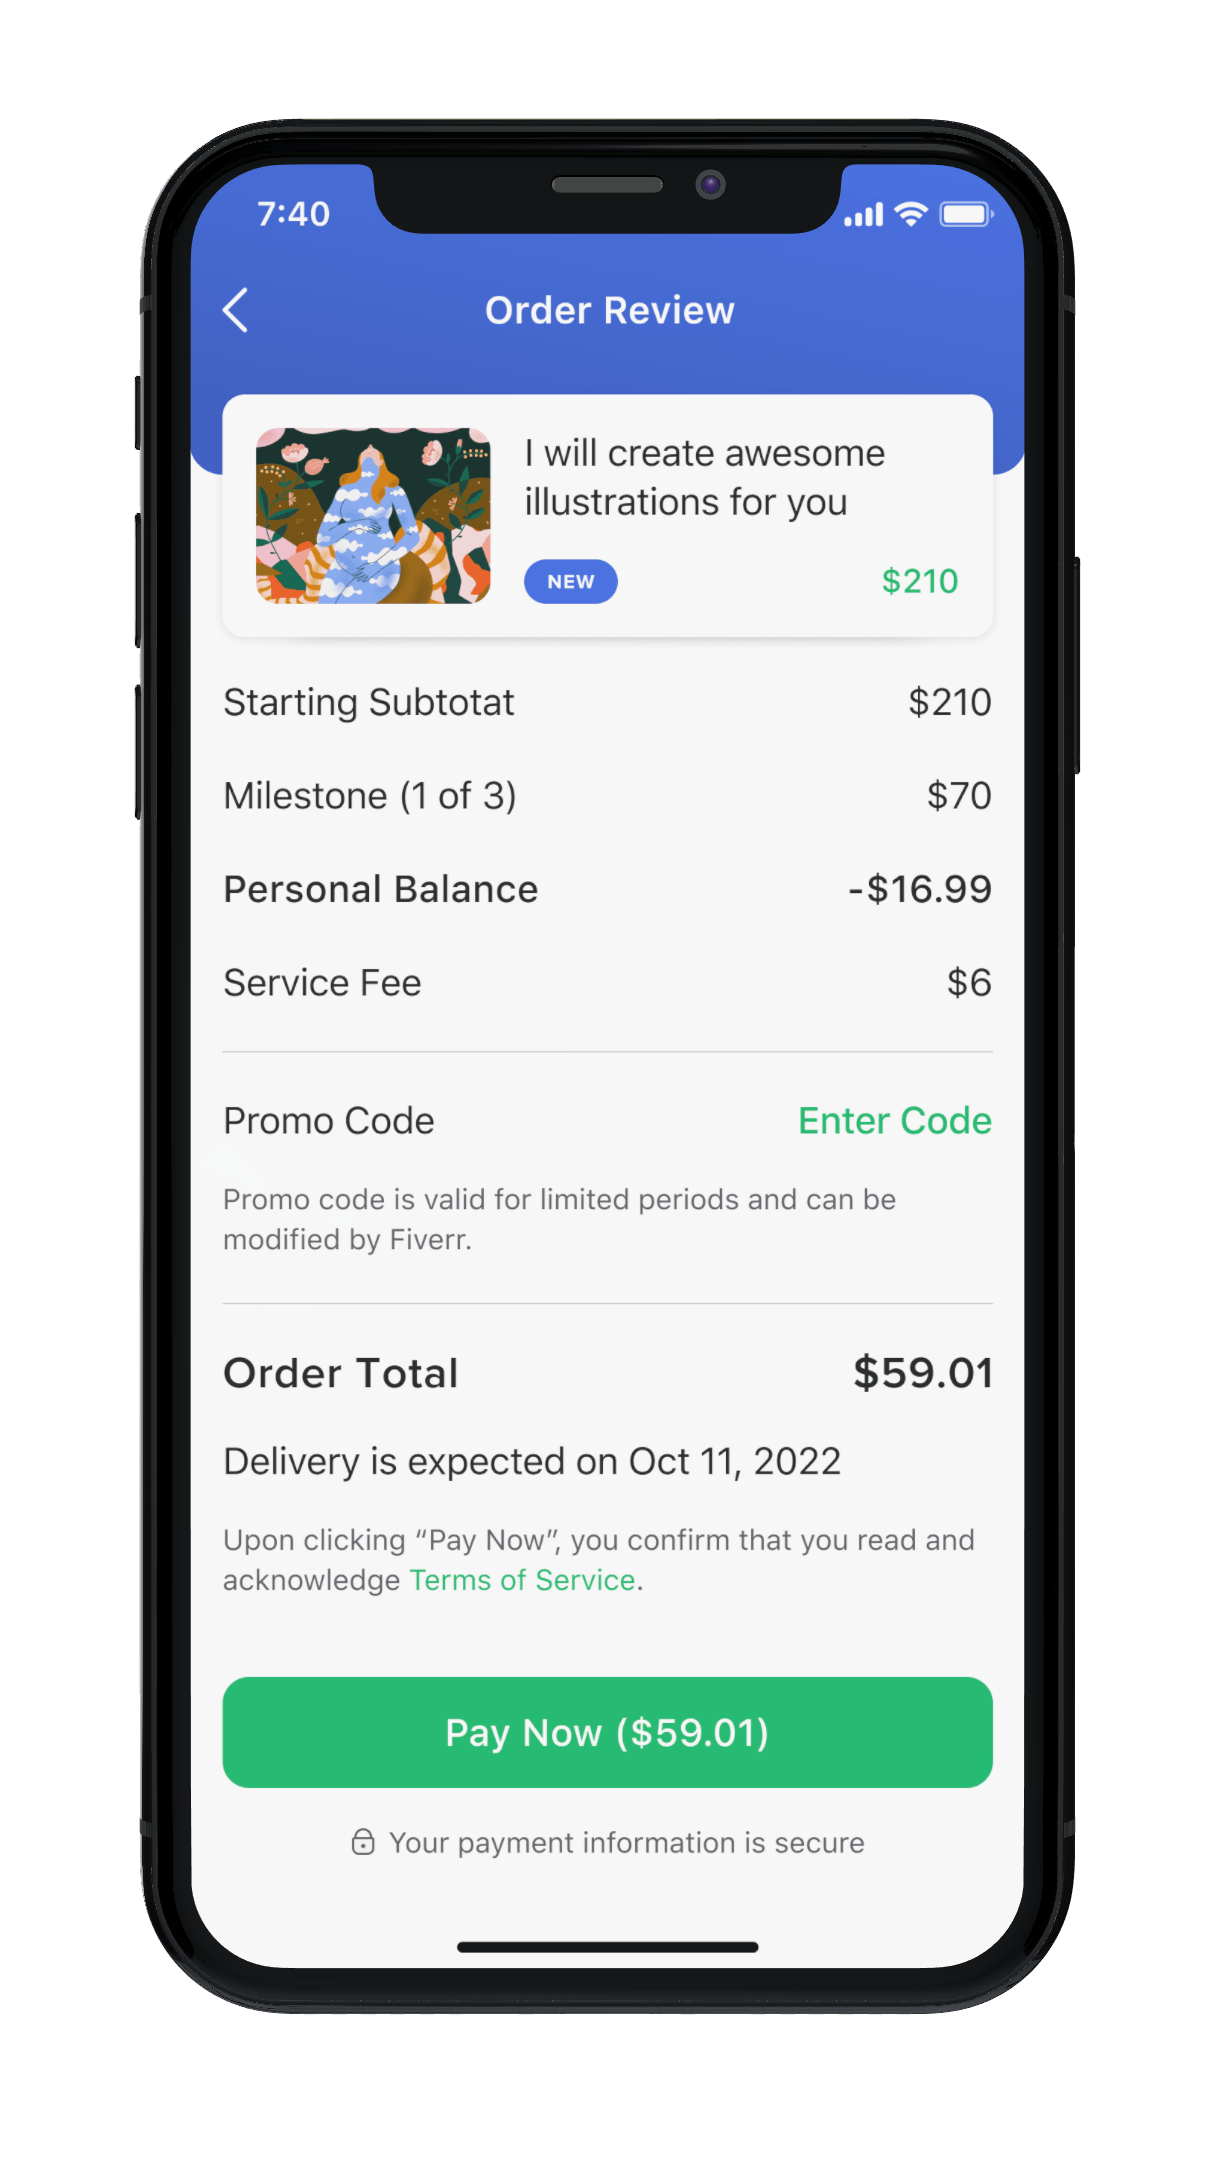 orderreview_04